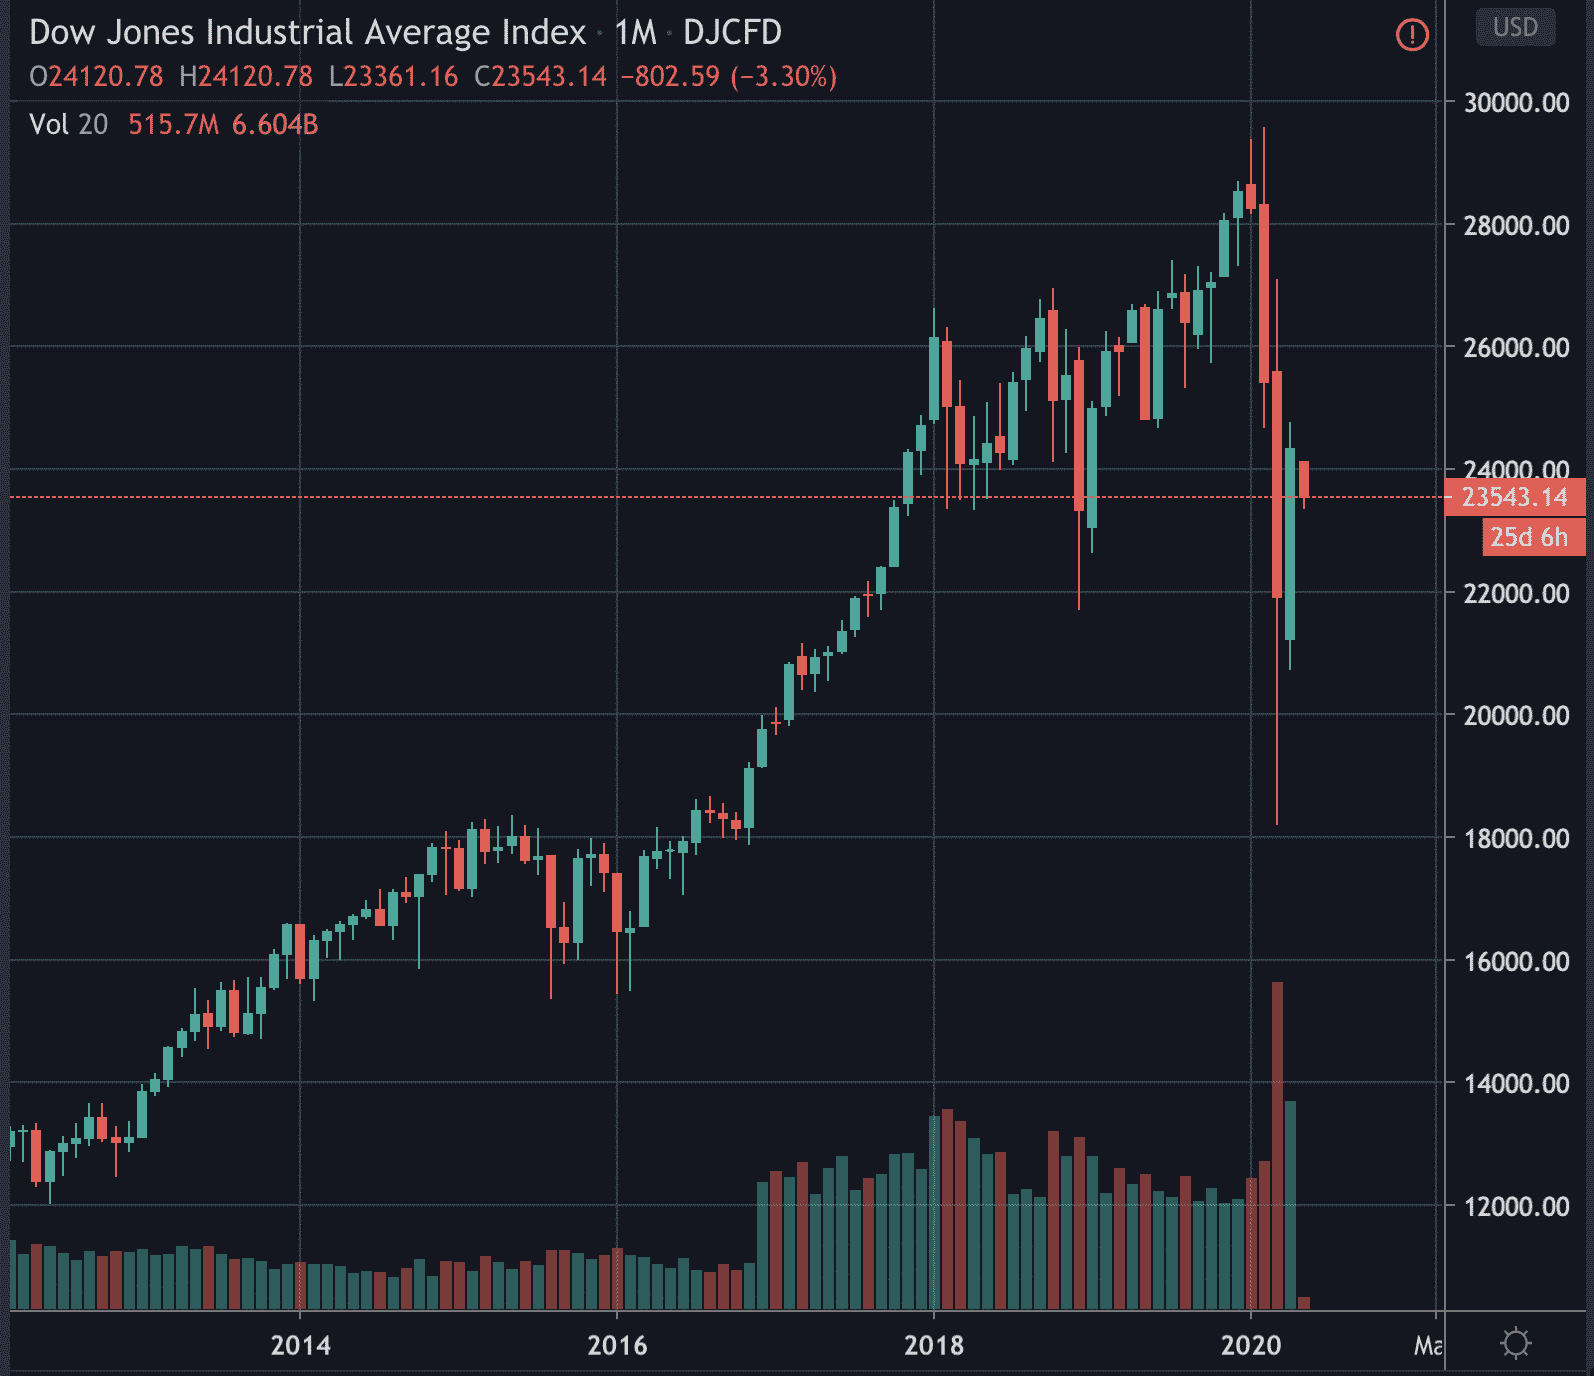 Dow price as of May 4 2020